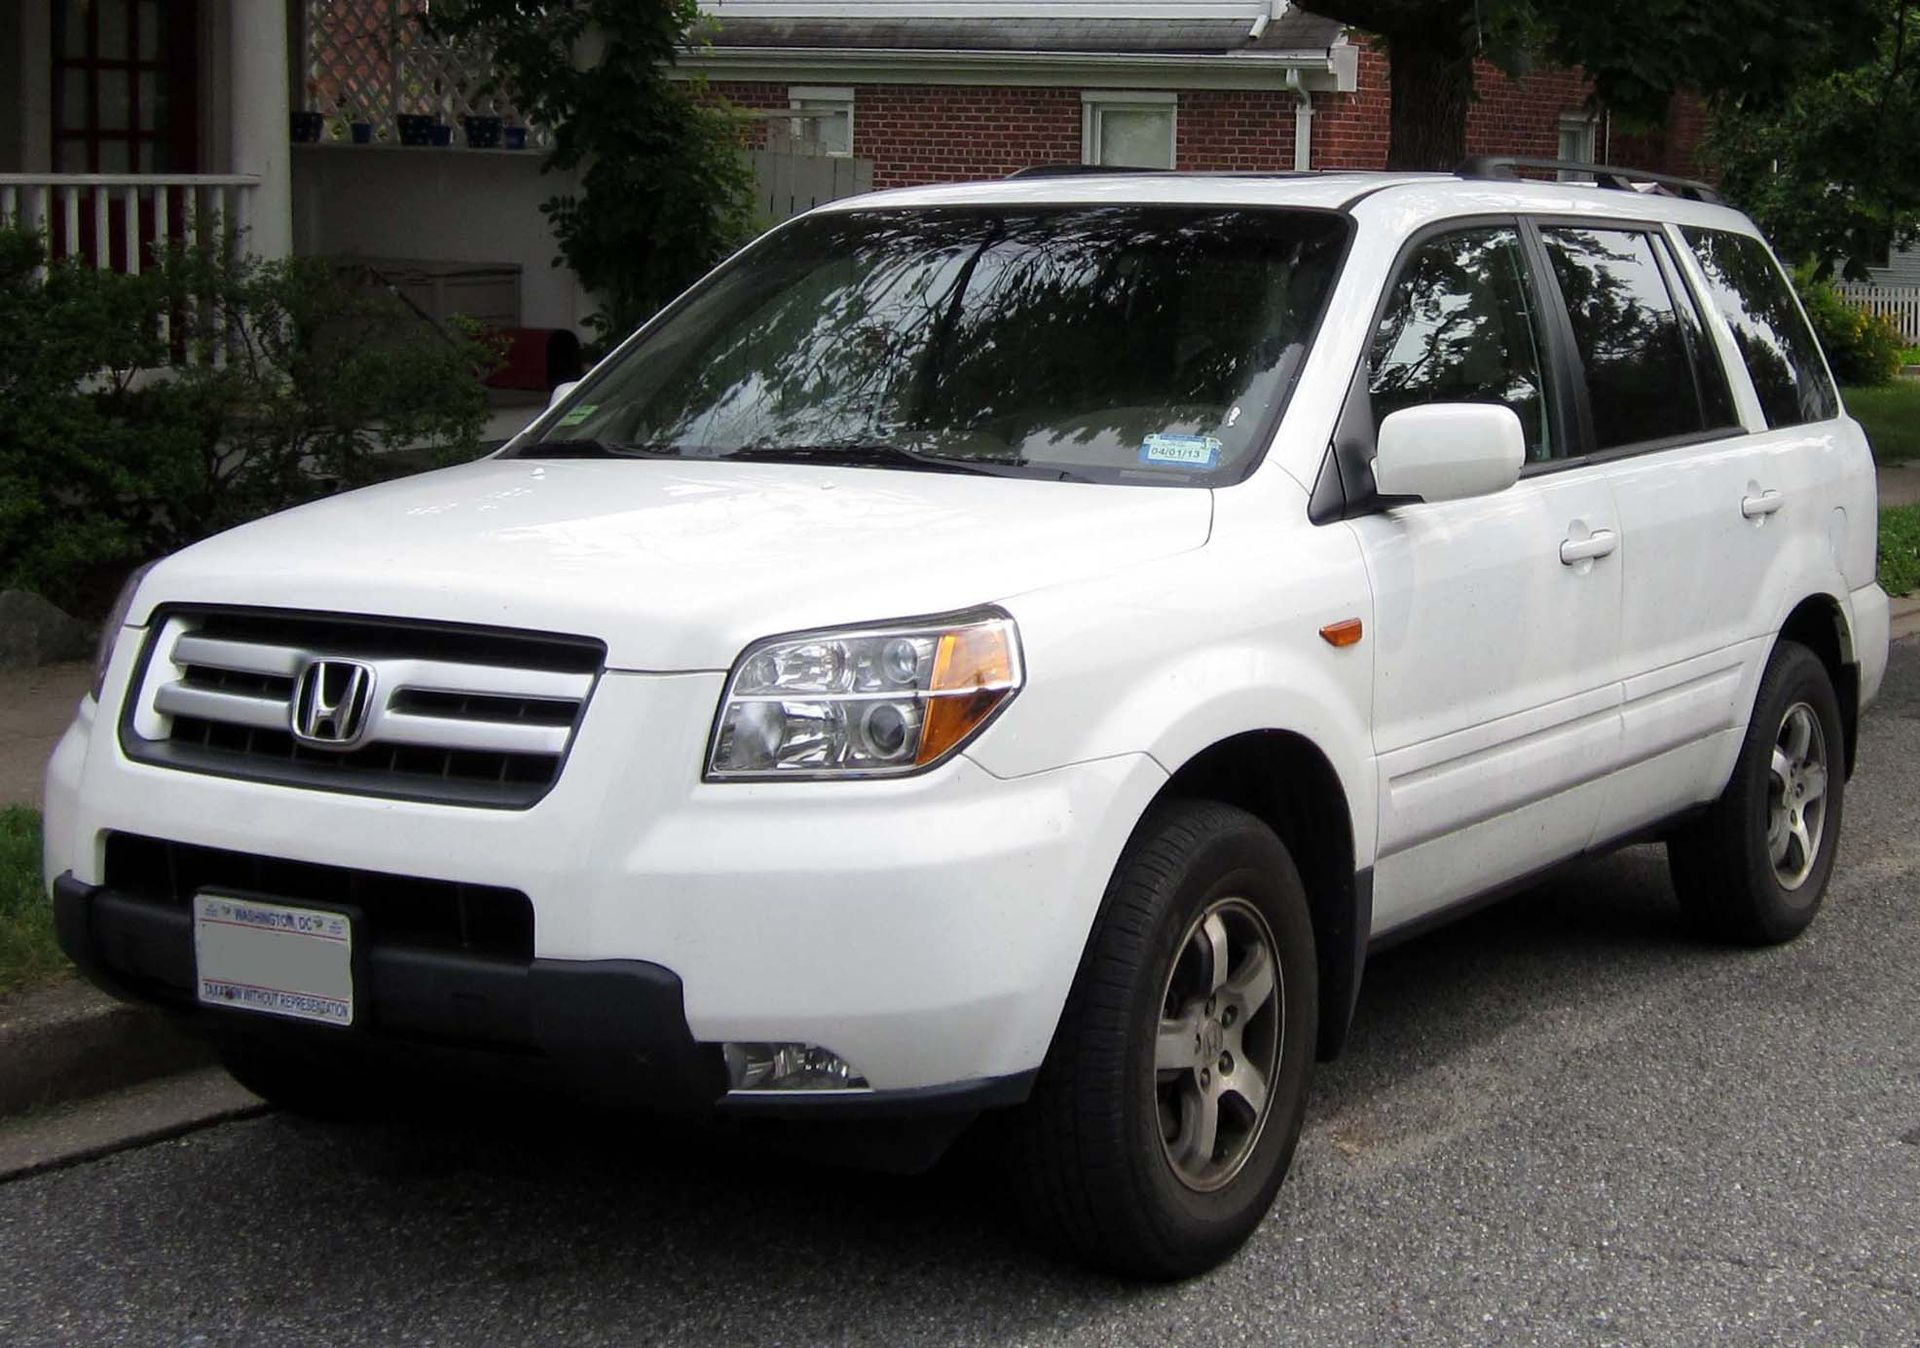 Honda Crv S For Sale Near Me Used Car Lot